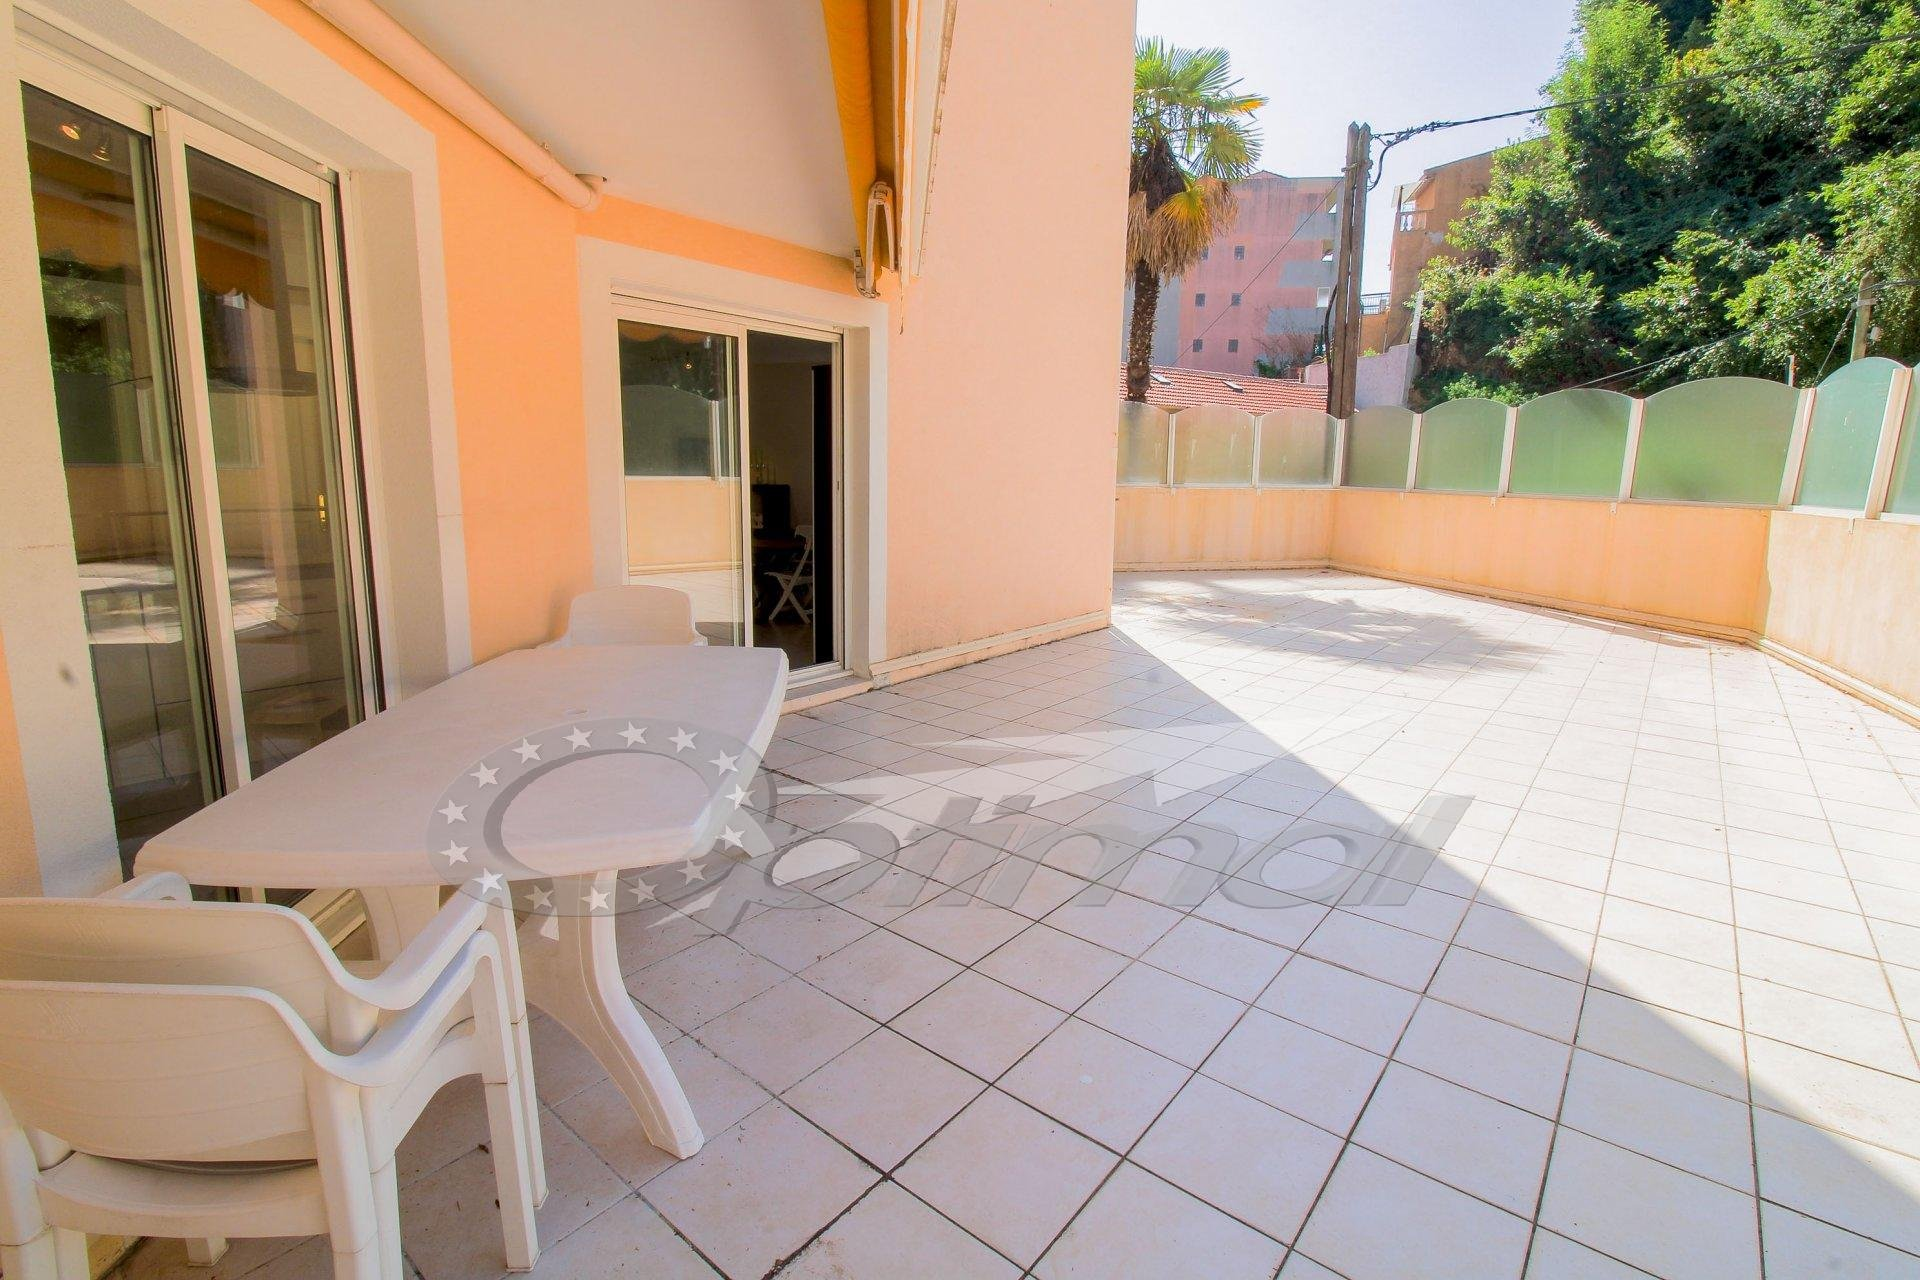 VERY NICE 2 ROOMS - TERRACE ABOUT 100M ² - BORRIGO